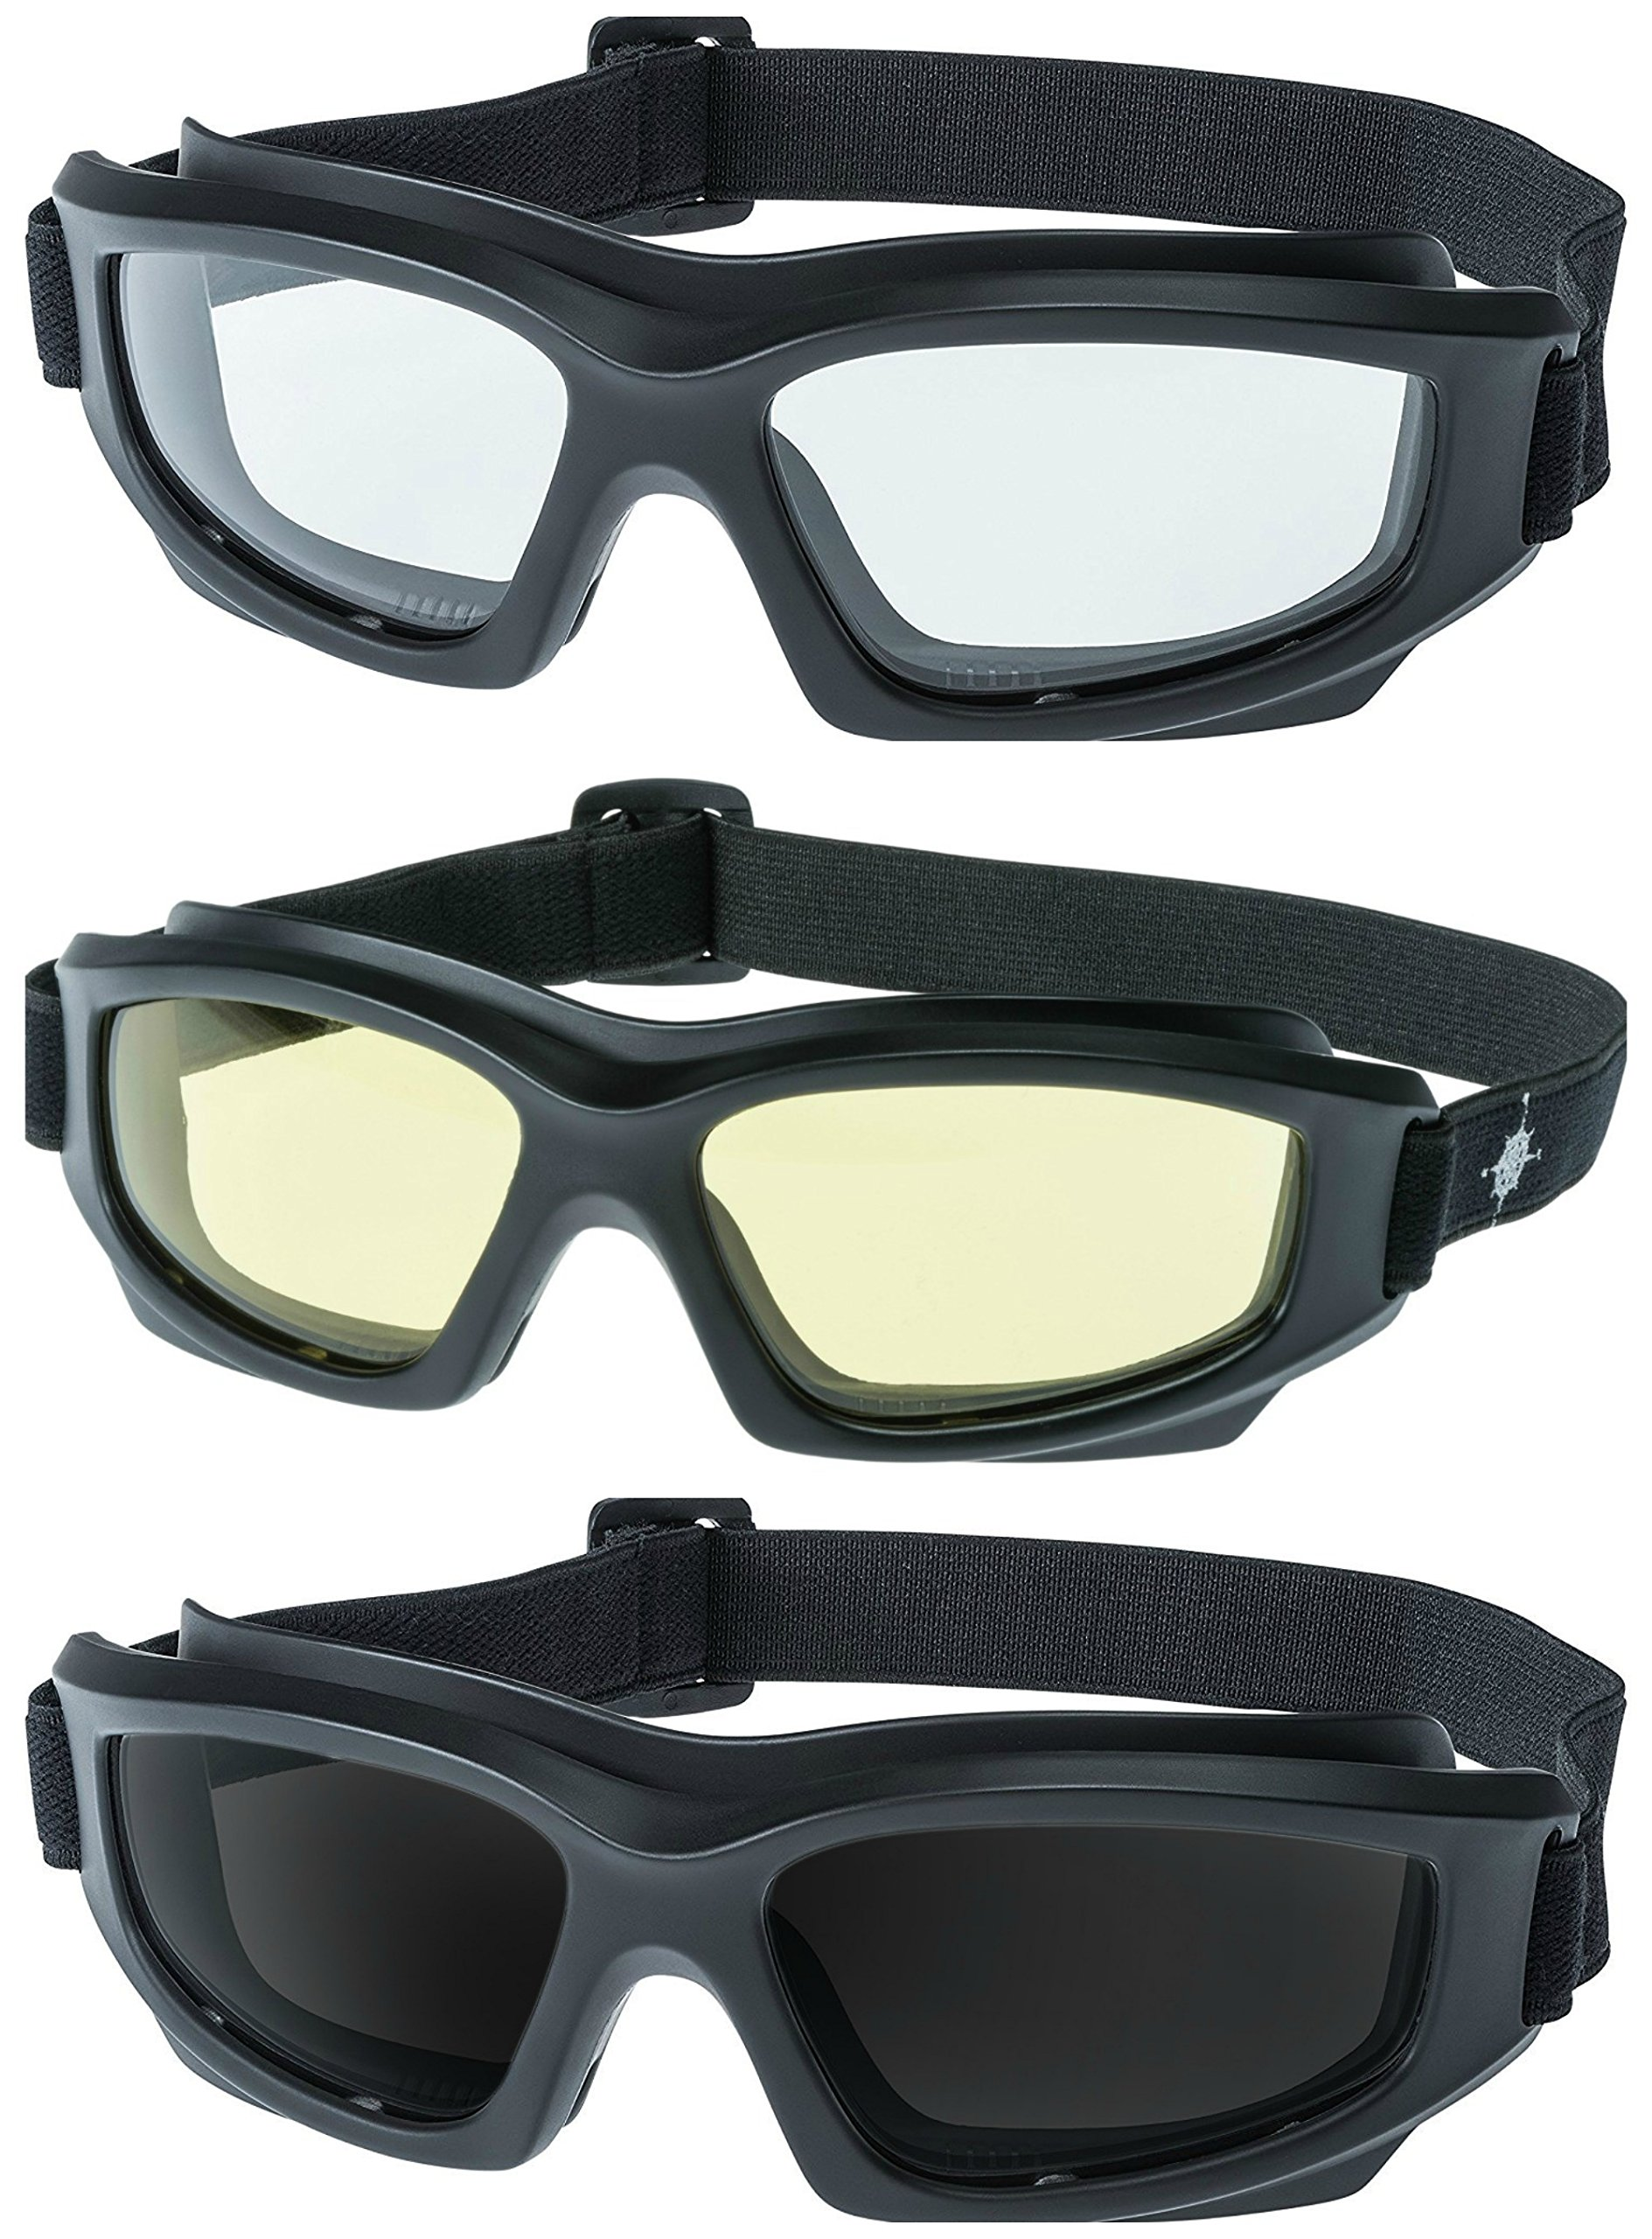 Motorcycle Riding Goggles: Heavy-Duty Riding Goggles''No Foam'' Design w/Hard Case, Microfiber Cleaning Cloth & Pouch Included (Set of 3) by Get Lost Helmets